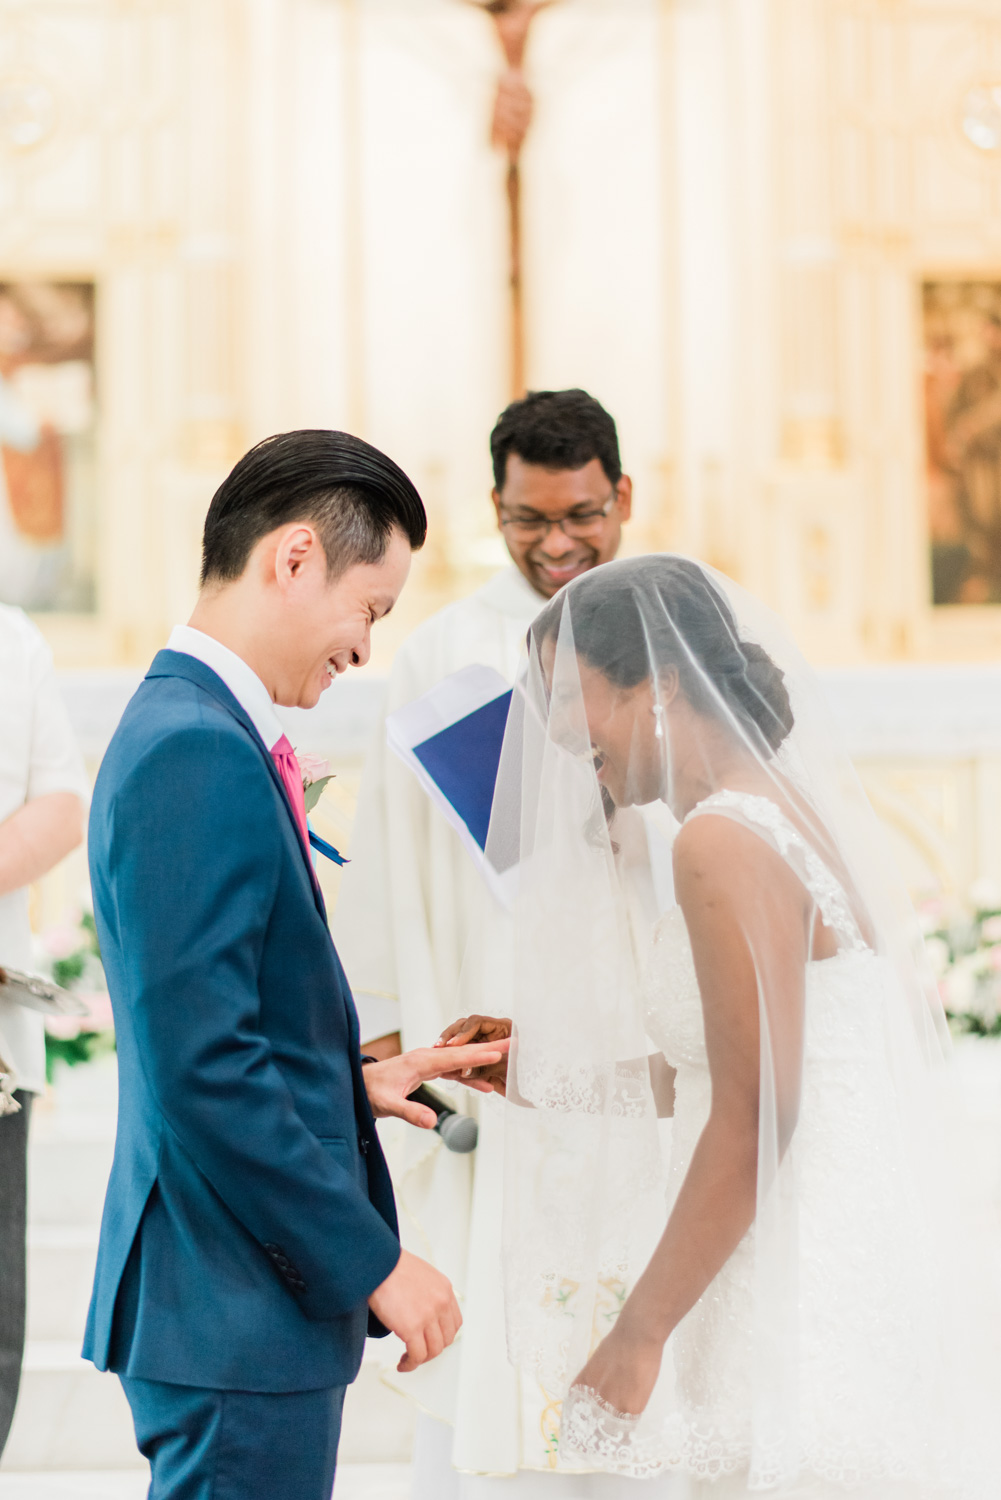 sfx-church-st-francis-xavier-kuala-lumpur-wedding-actual-day-mixed-couple-marriage-candid-blue-themed